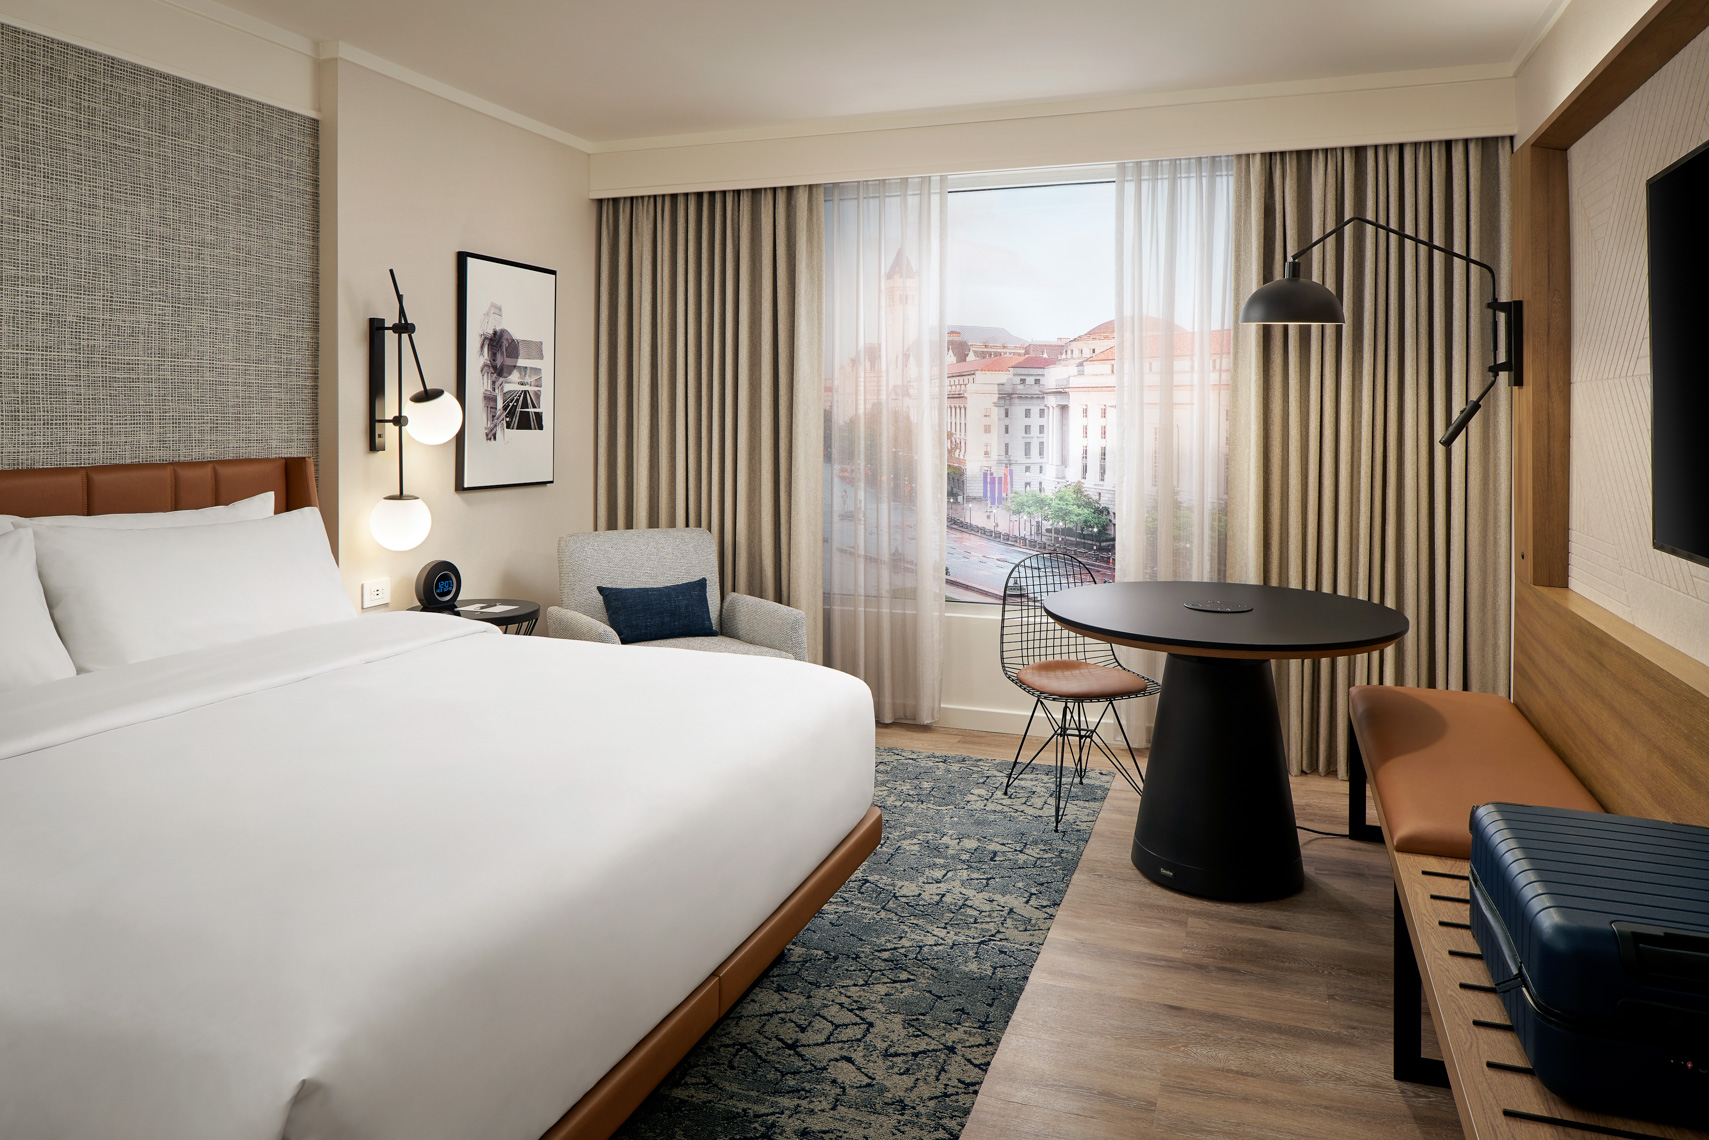 HOTELS-Premium79-Sheraton-Model-Room1